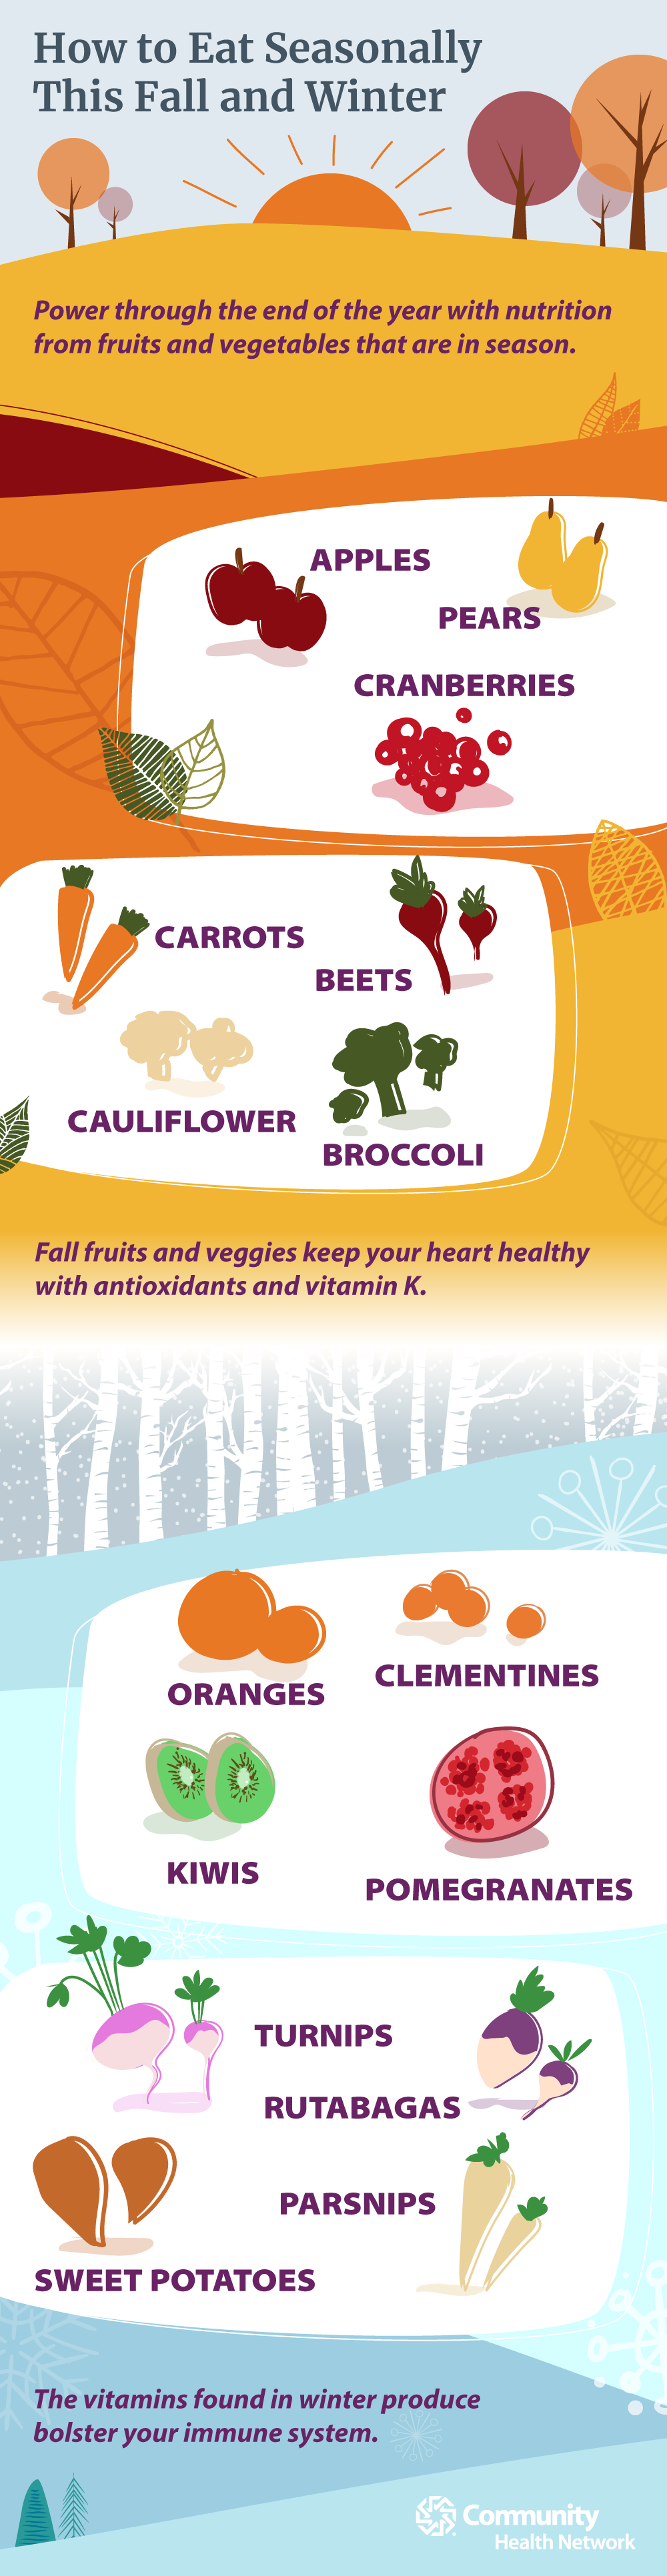 Fall and Winter Nutrition